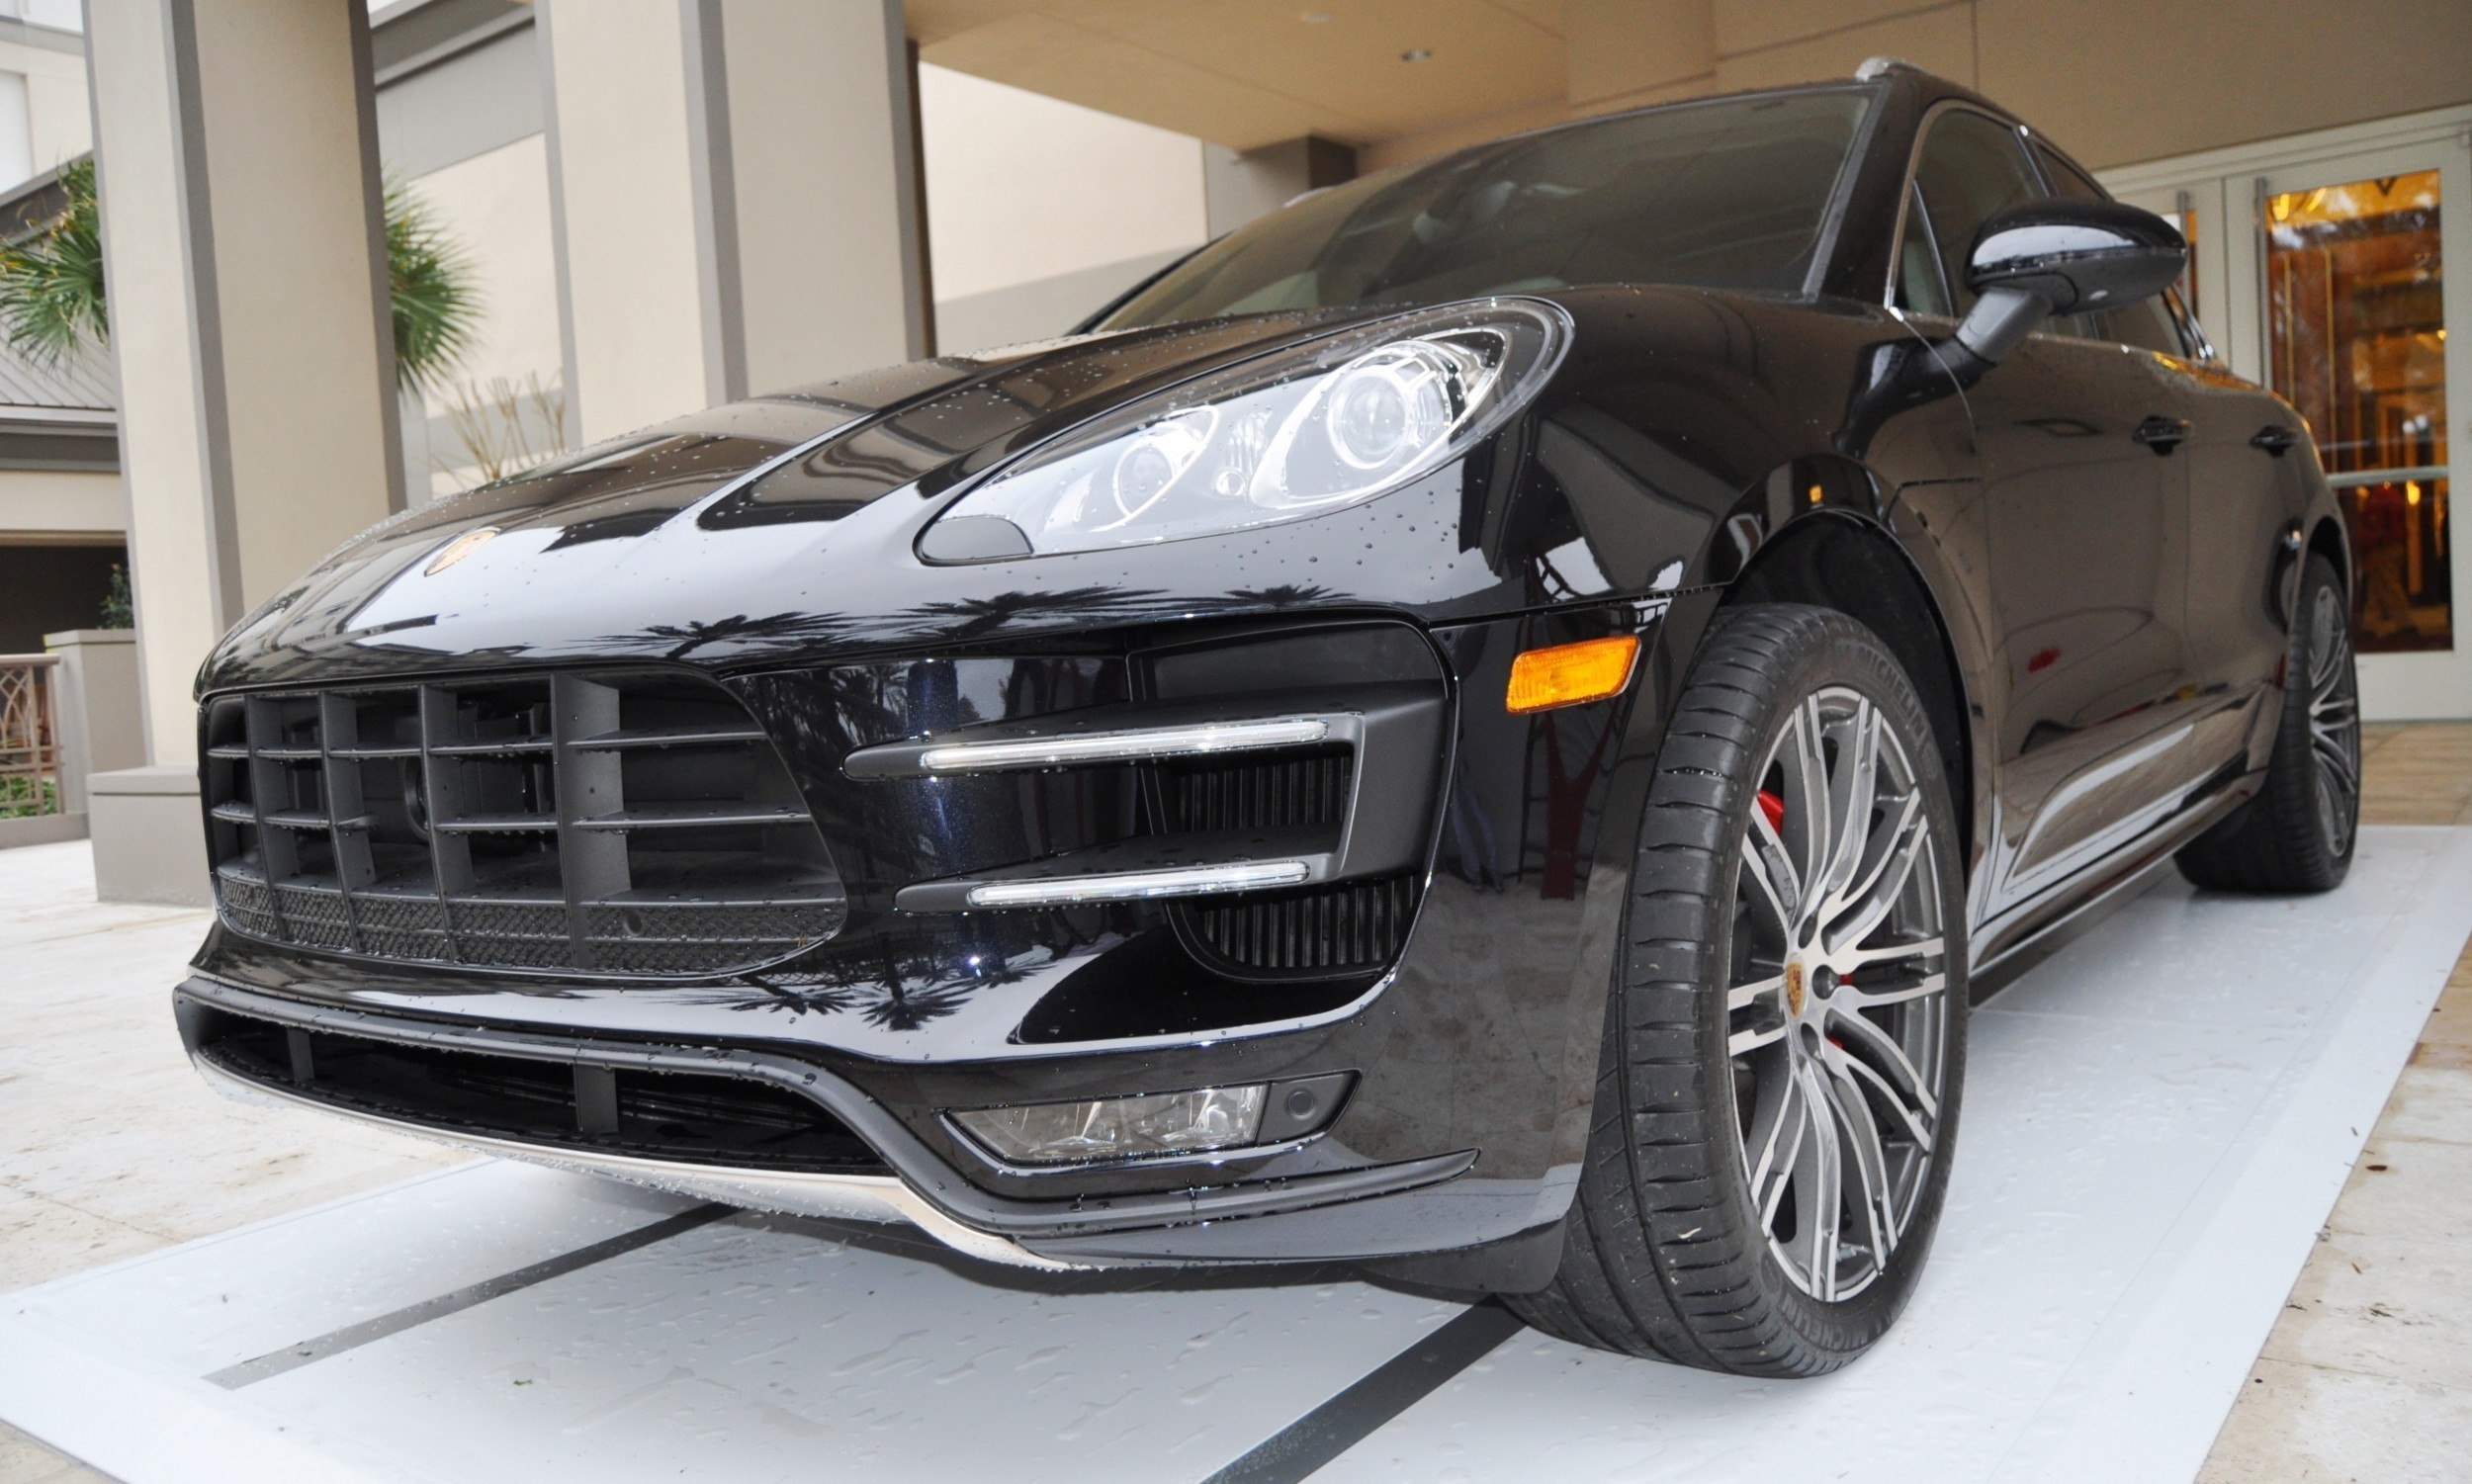 2015 Porsche Macan Turbo -- Looking Amazing, Athletic and Nimble -- 50+ Real-Life Photos Inside and Out 35a